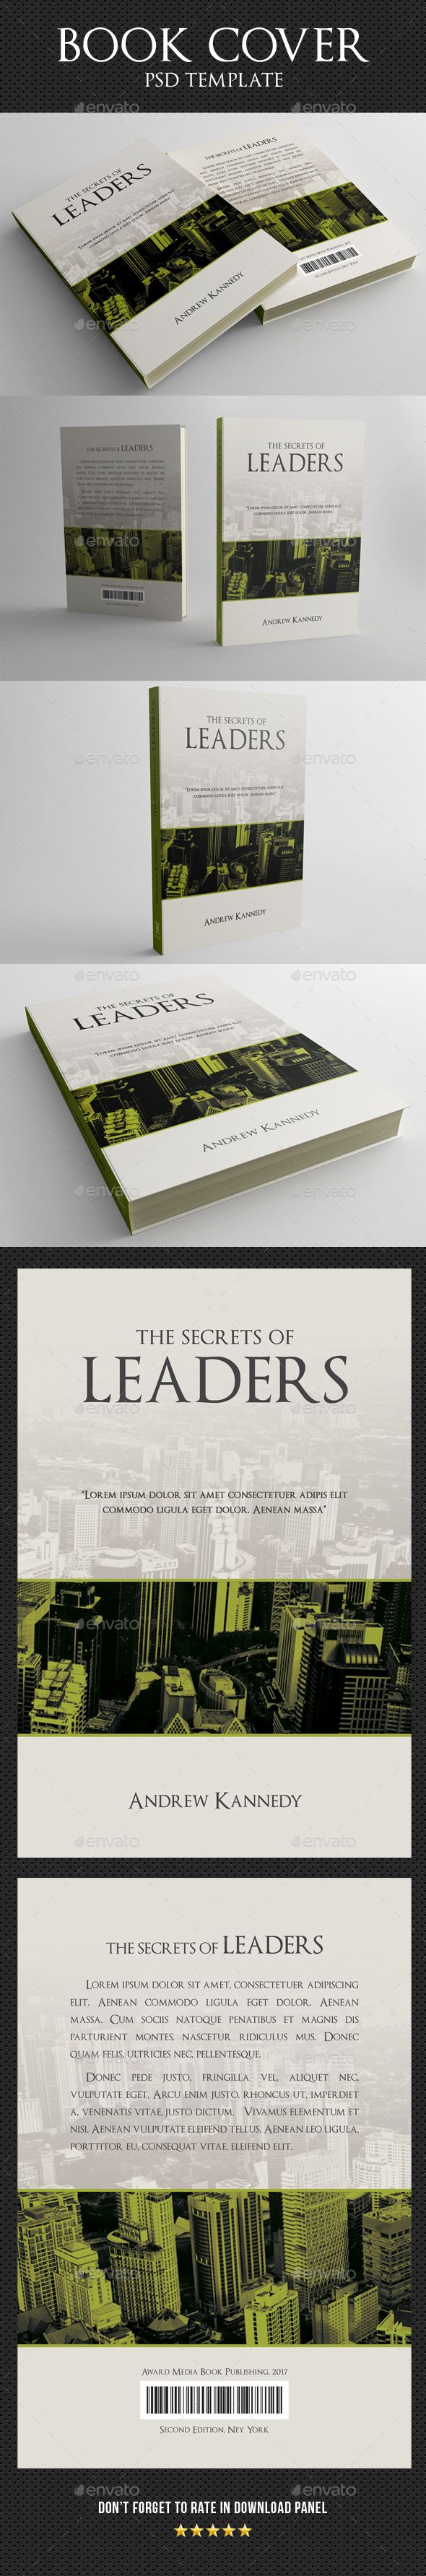 Book Cover Design Template PSD